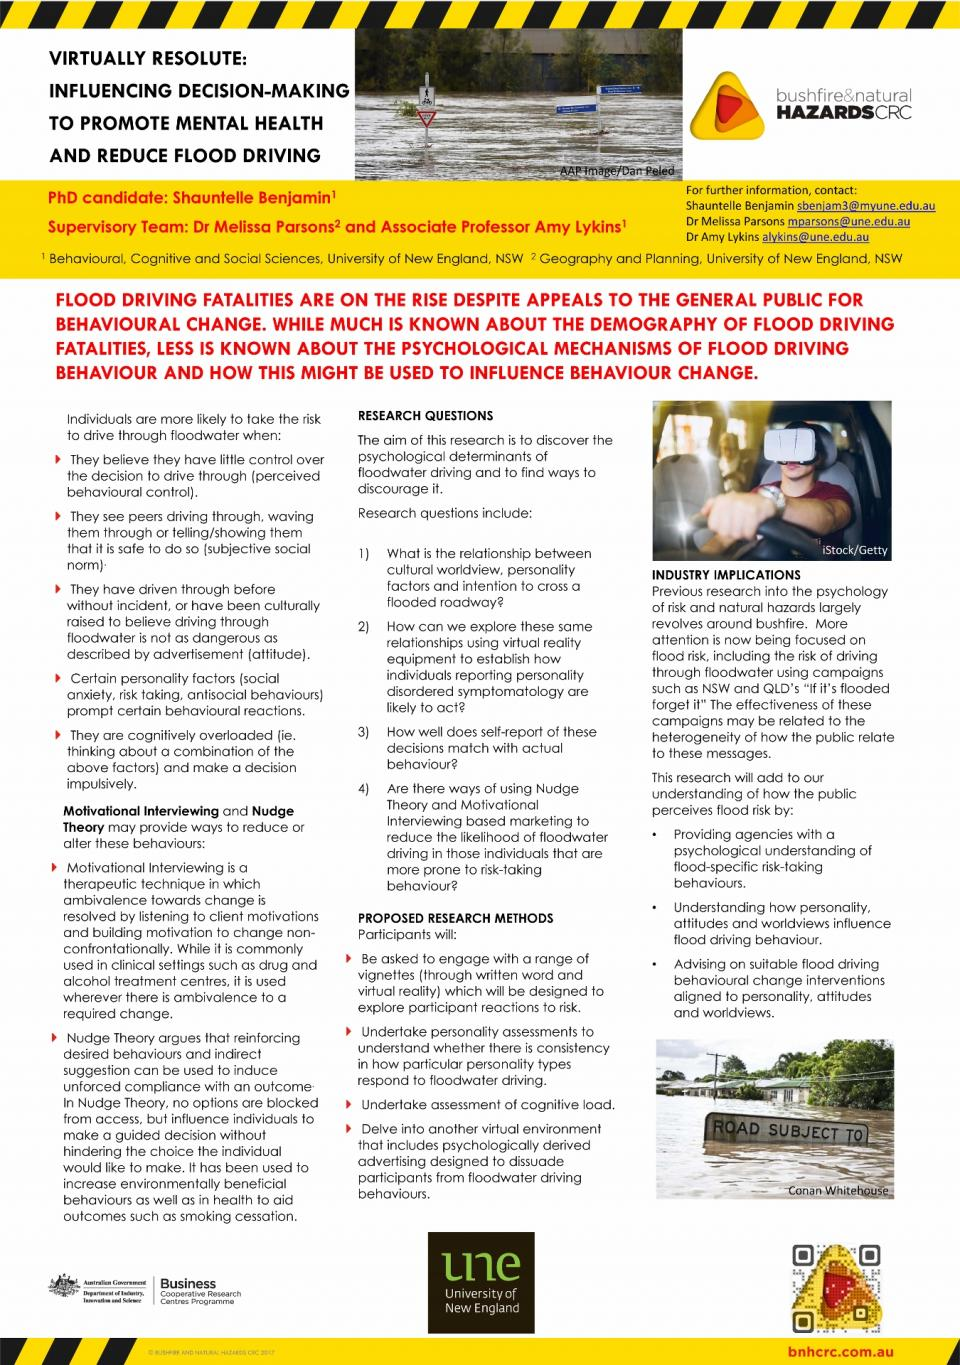 Virtually resolute: influencing decision-making to promote mental health and reduce flood driving